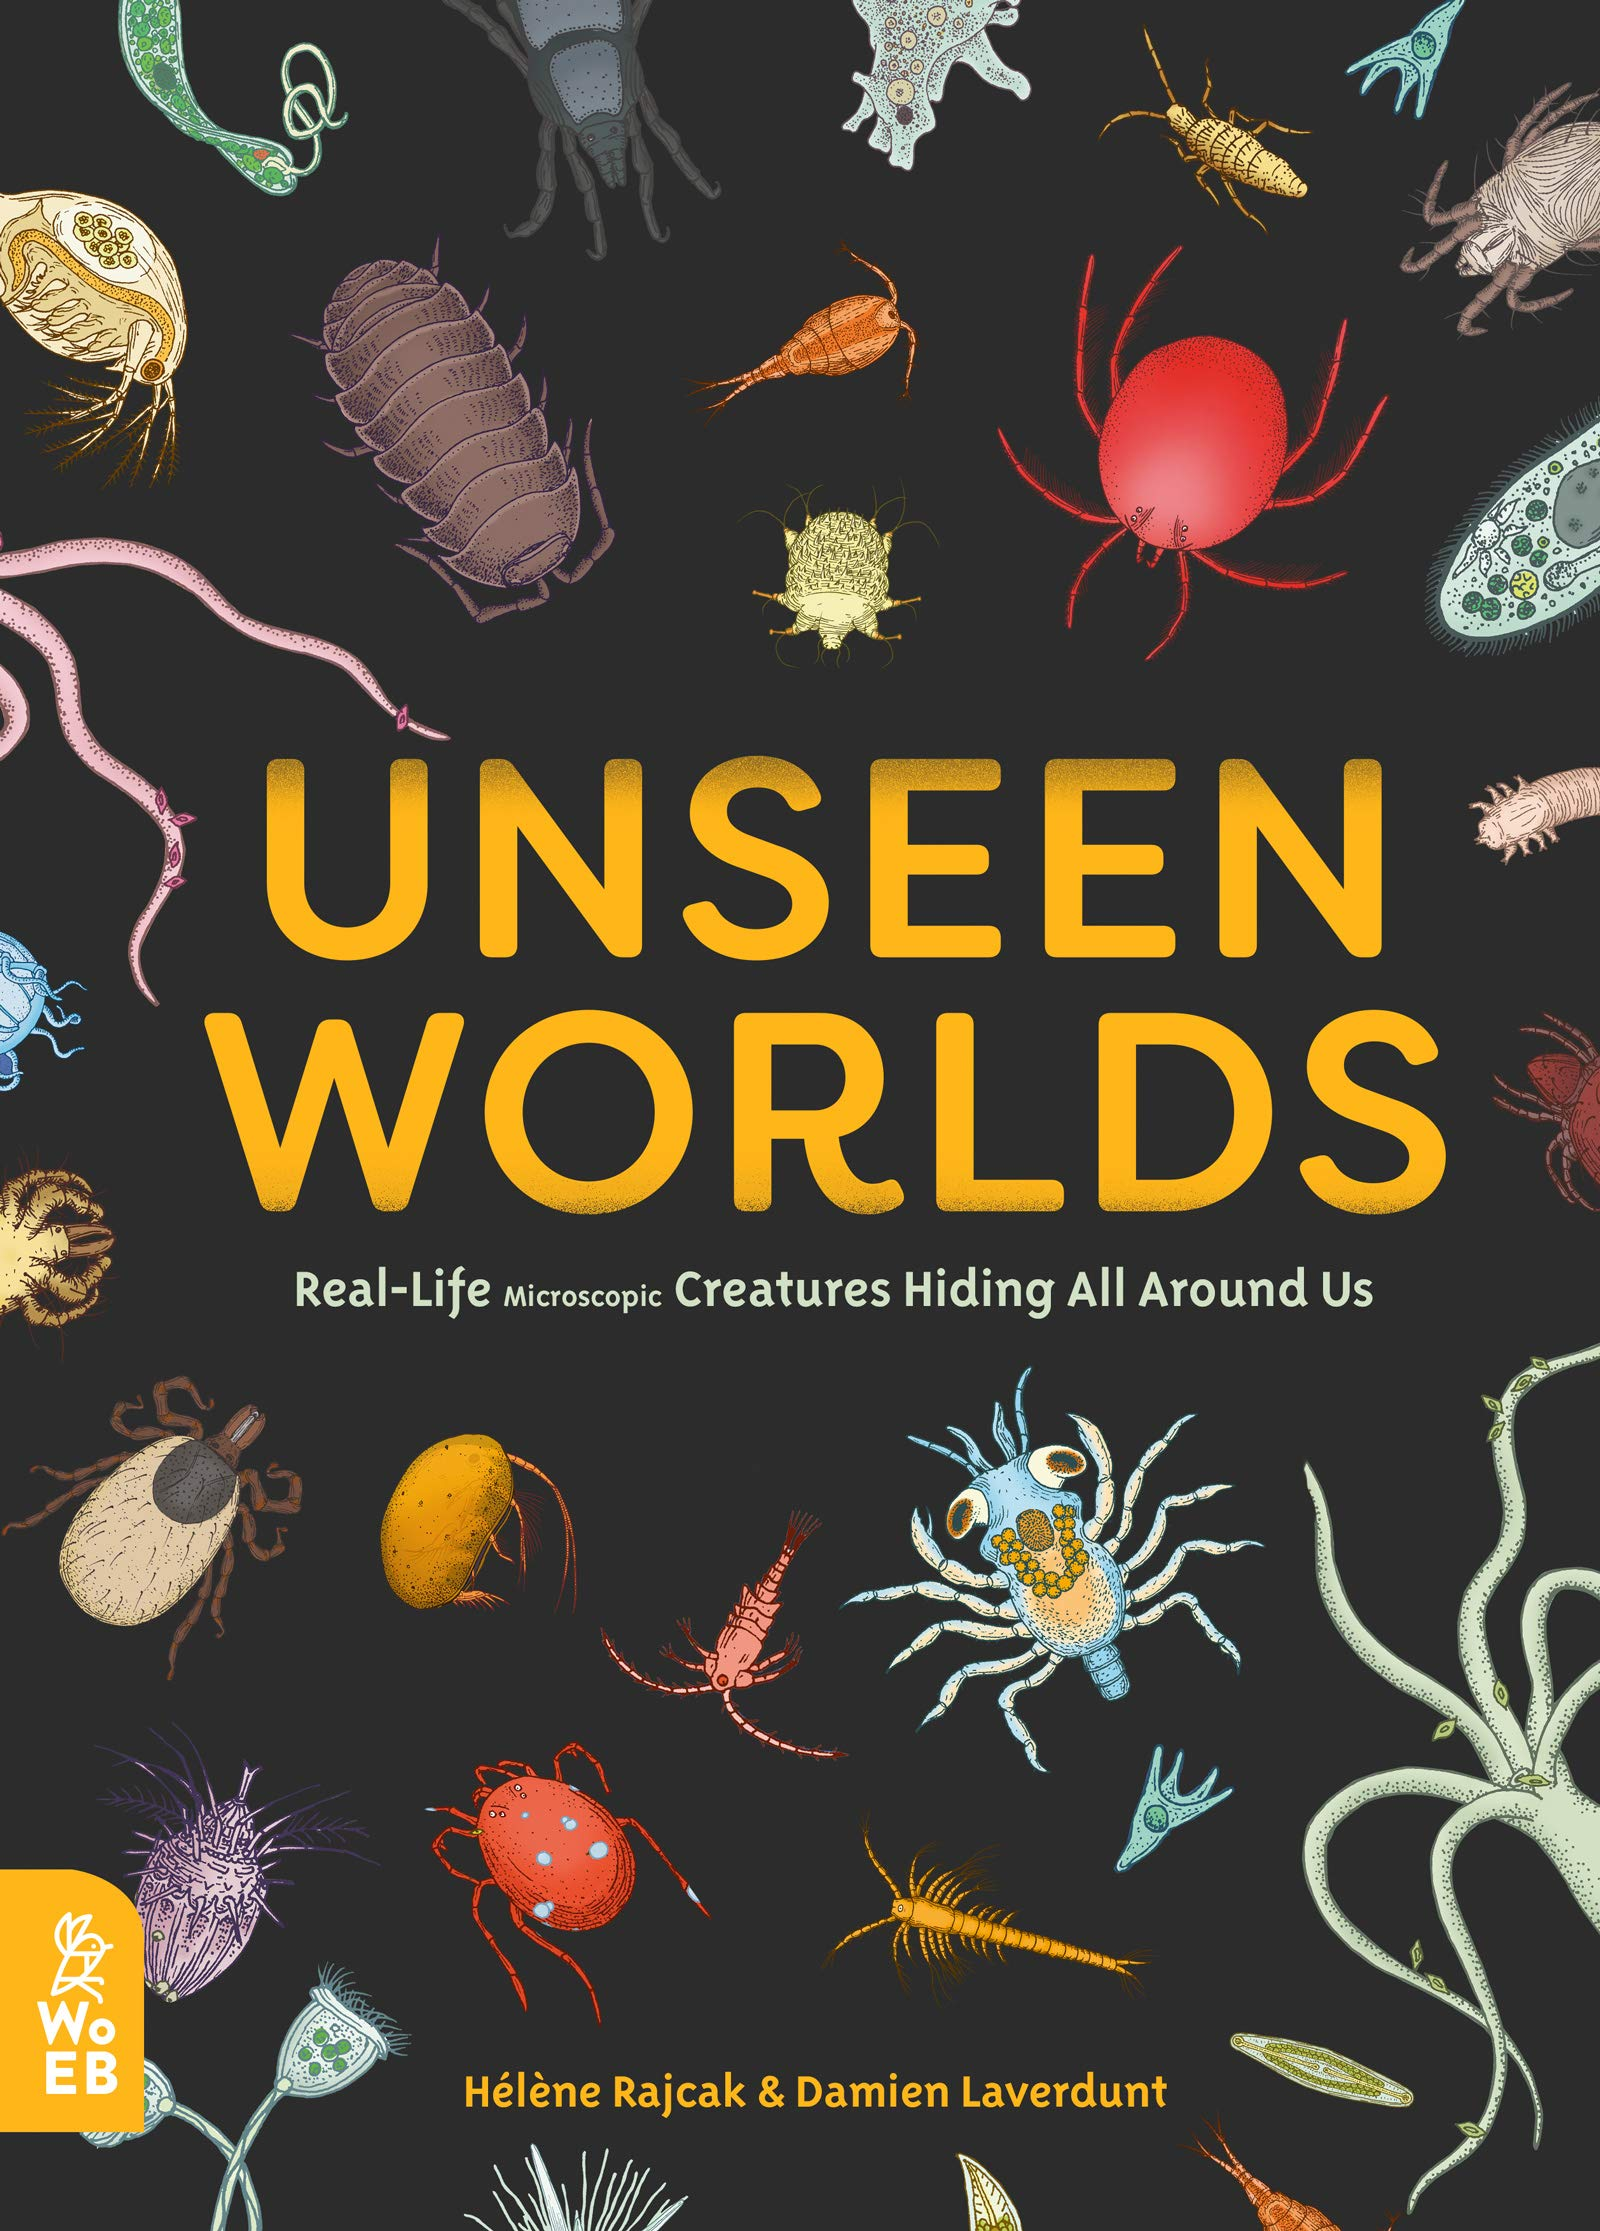 Image result for unseen worlds real-life microscopic creatures hiding all around us